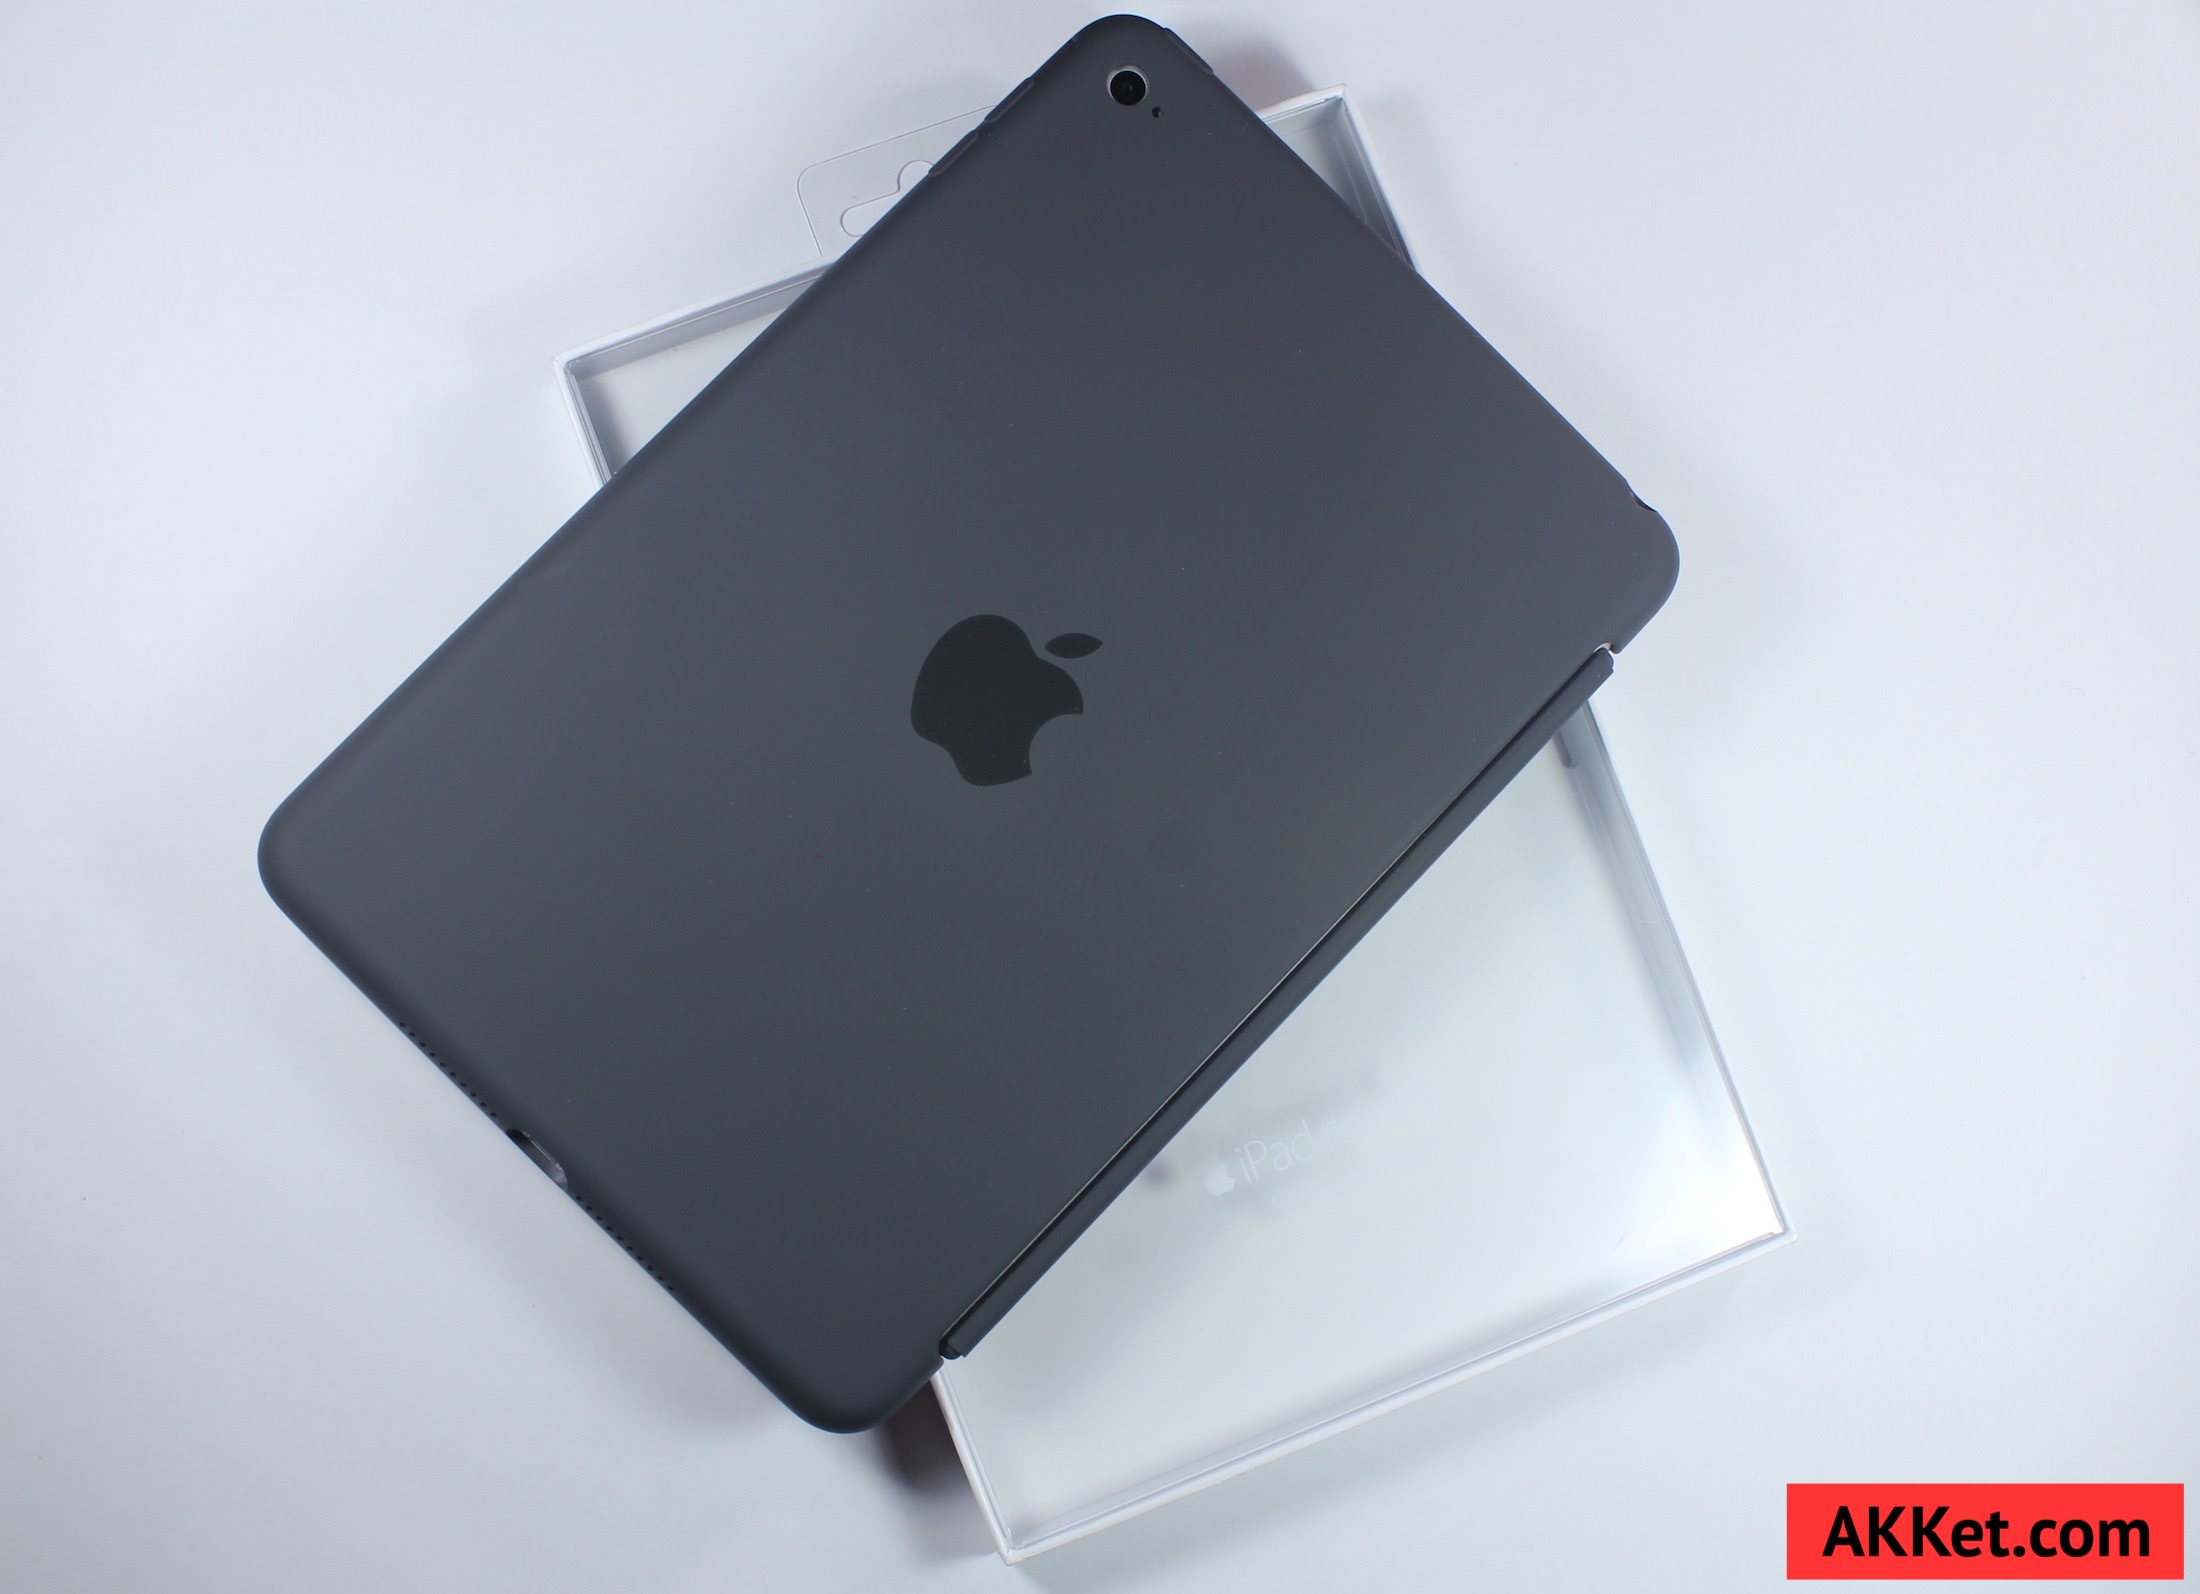 Apple Silicone Case iPad mini 4 Charcoal Gray review 17